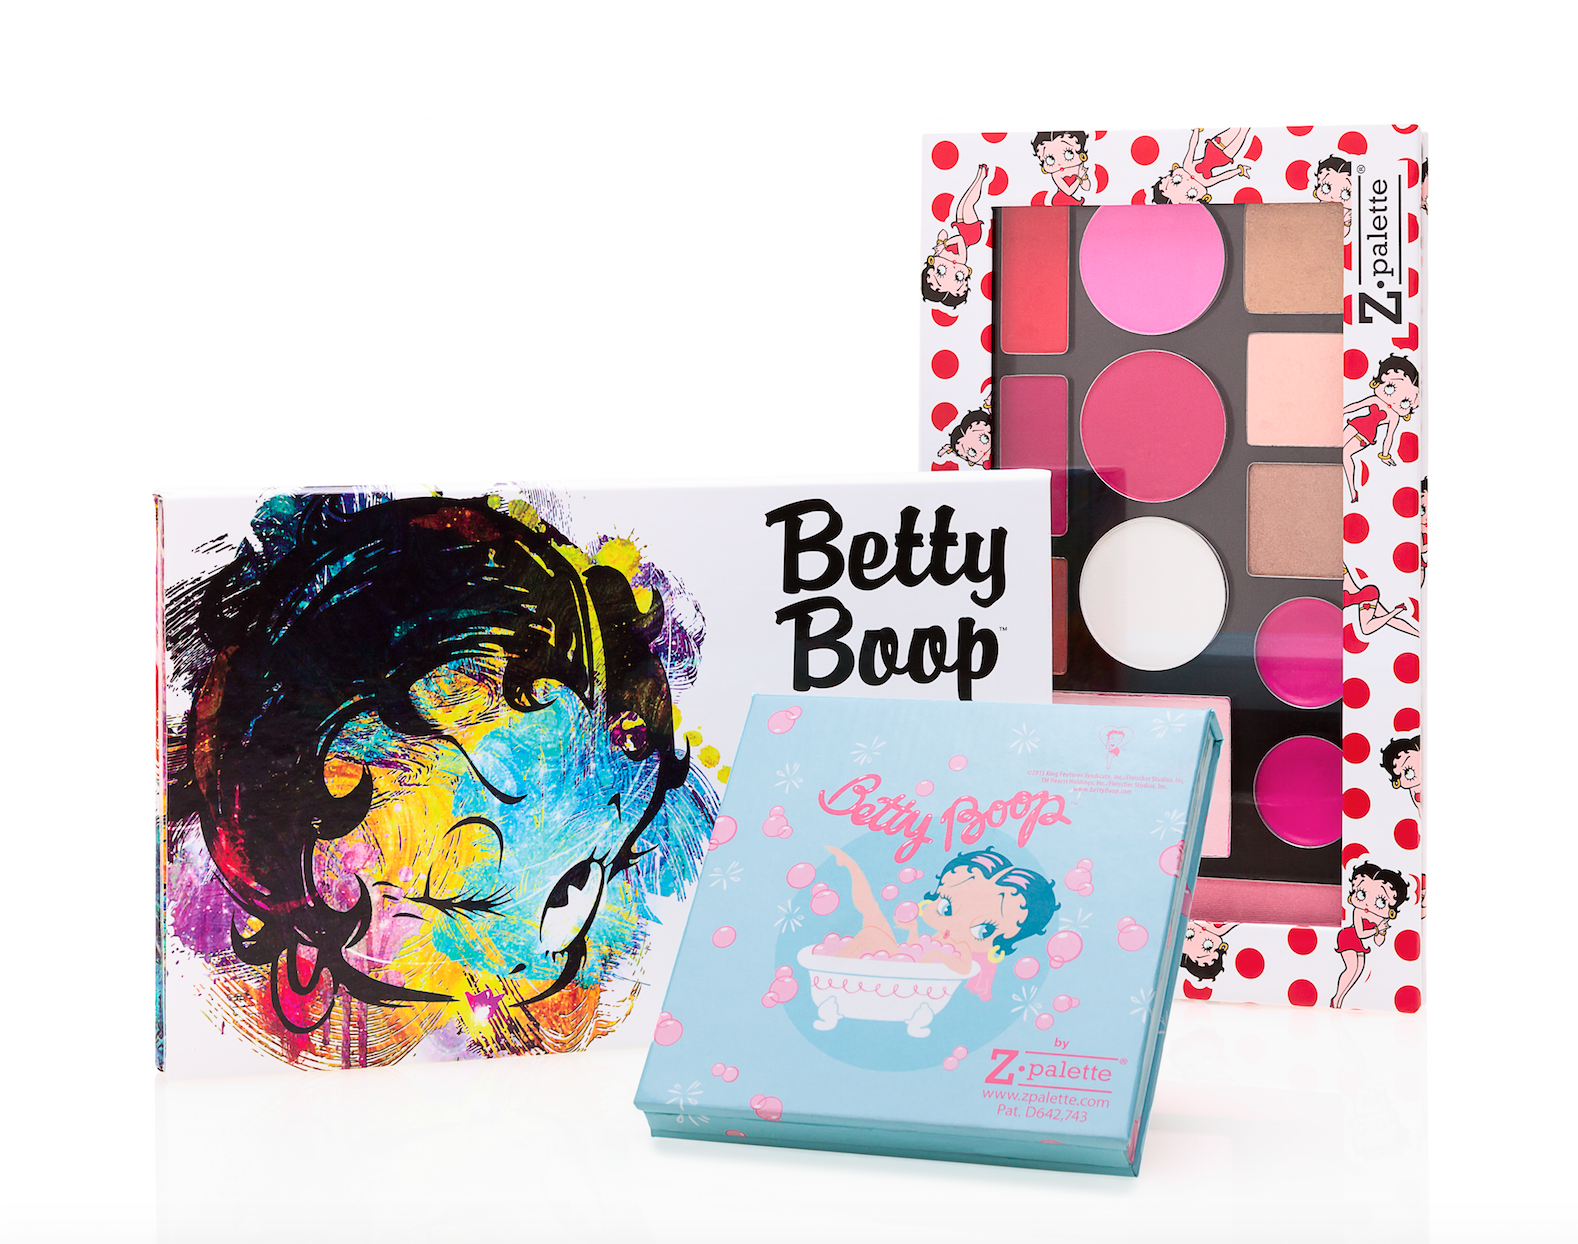 New Betty Boop collection from Z palette! Z palette